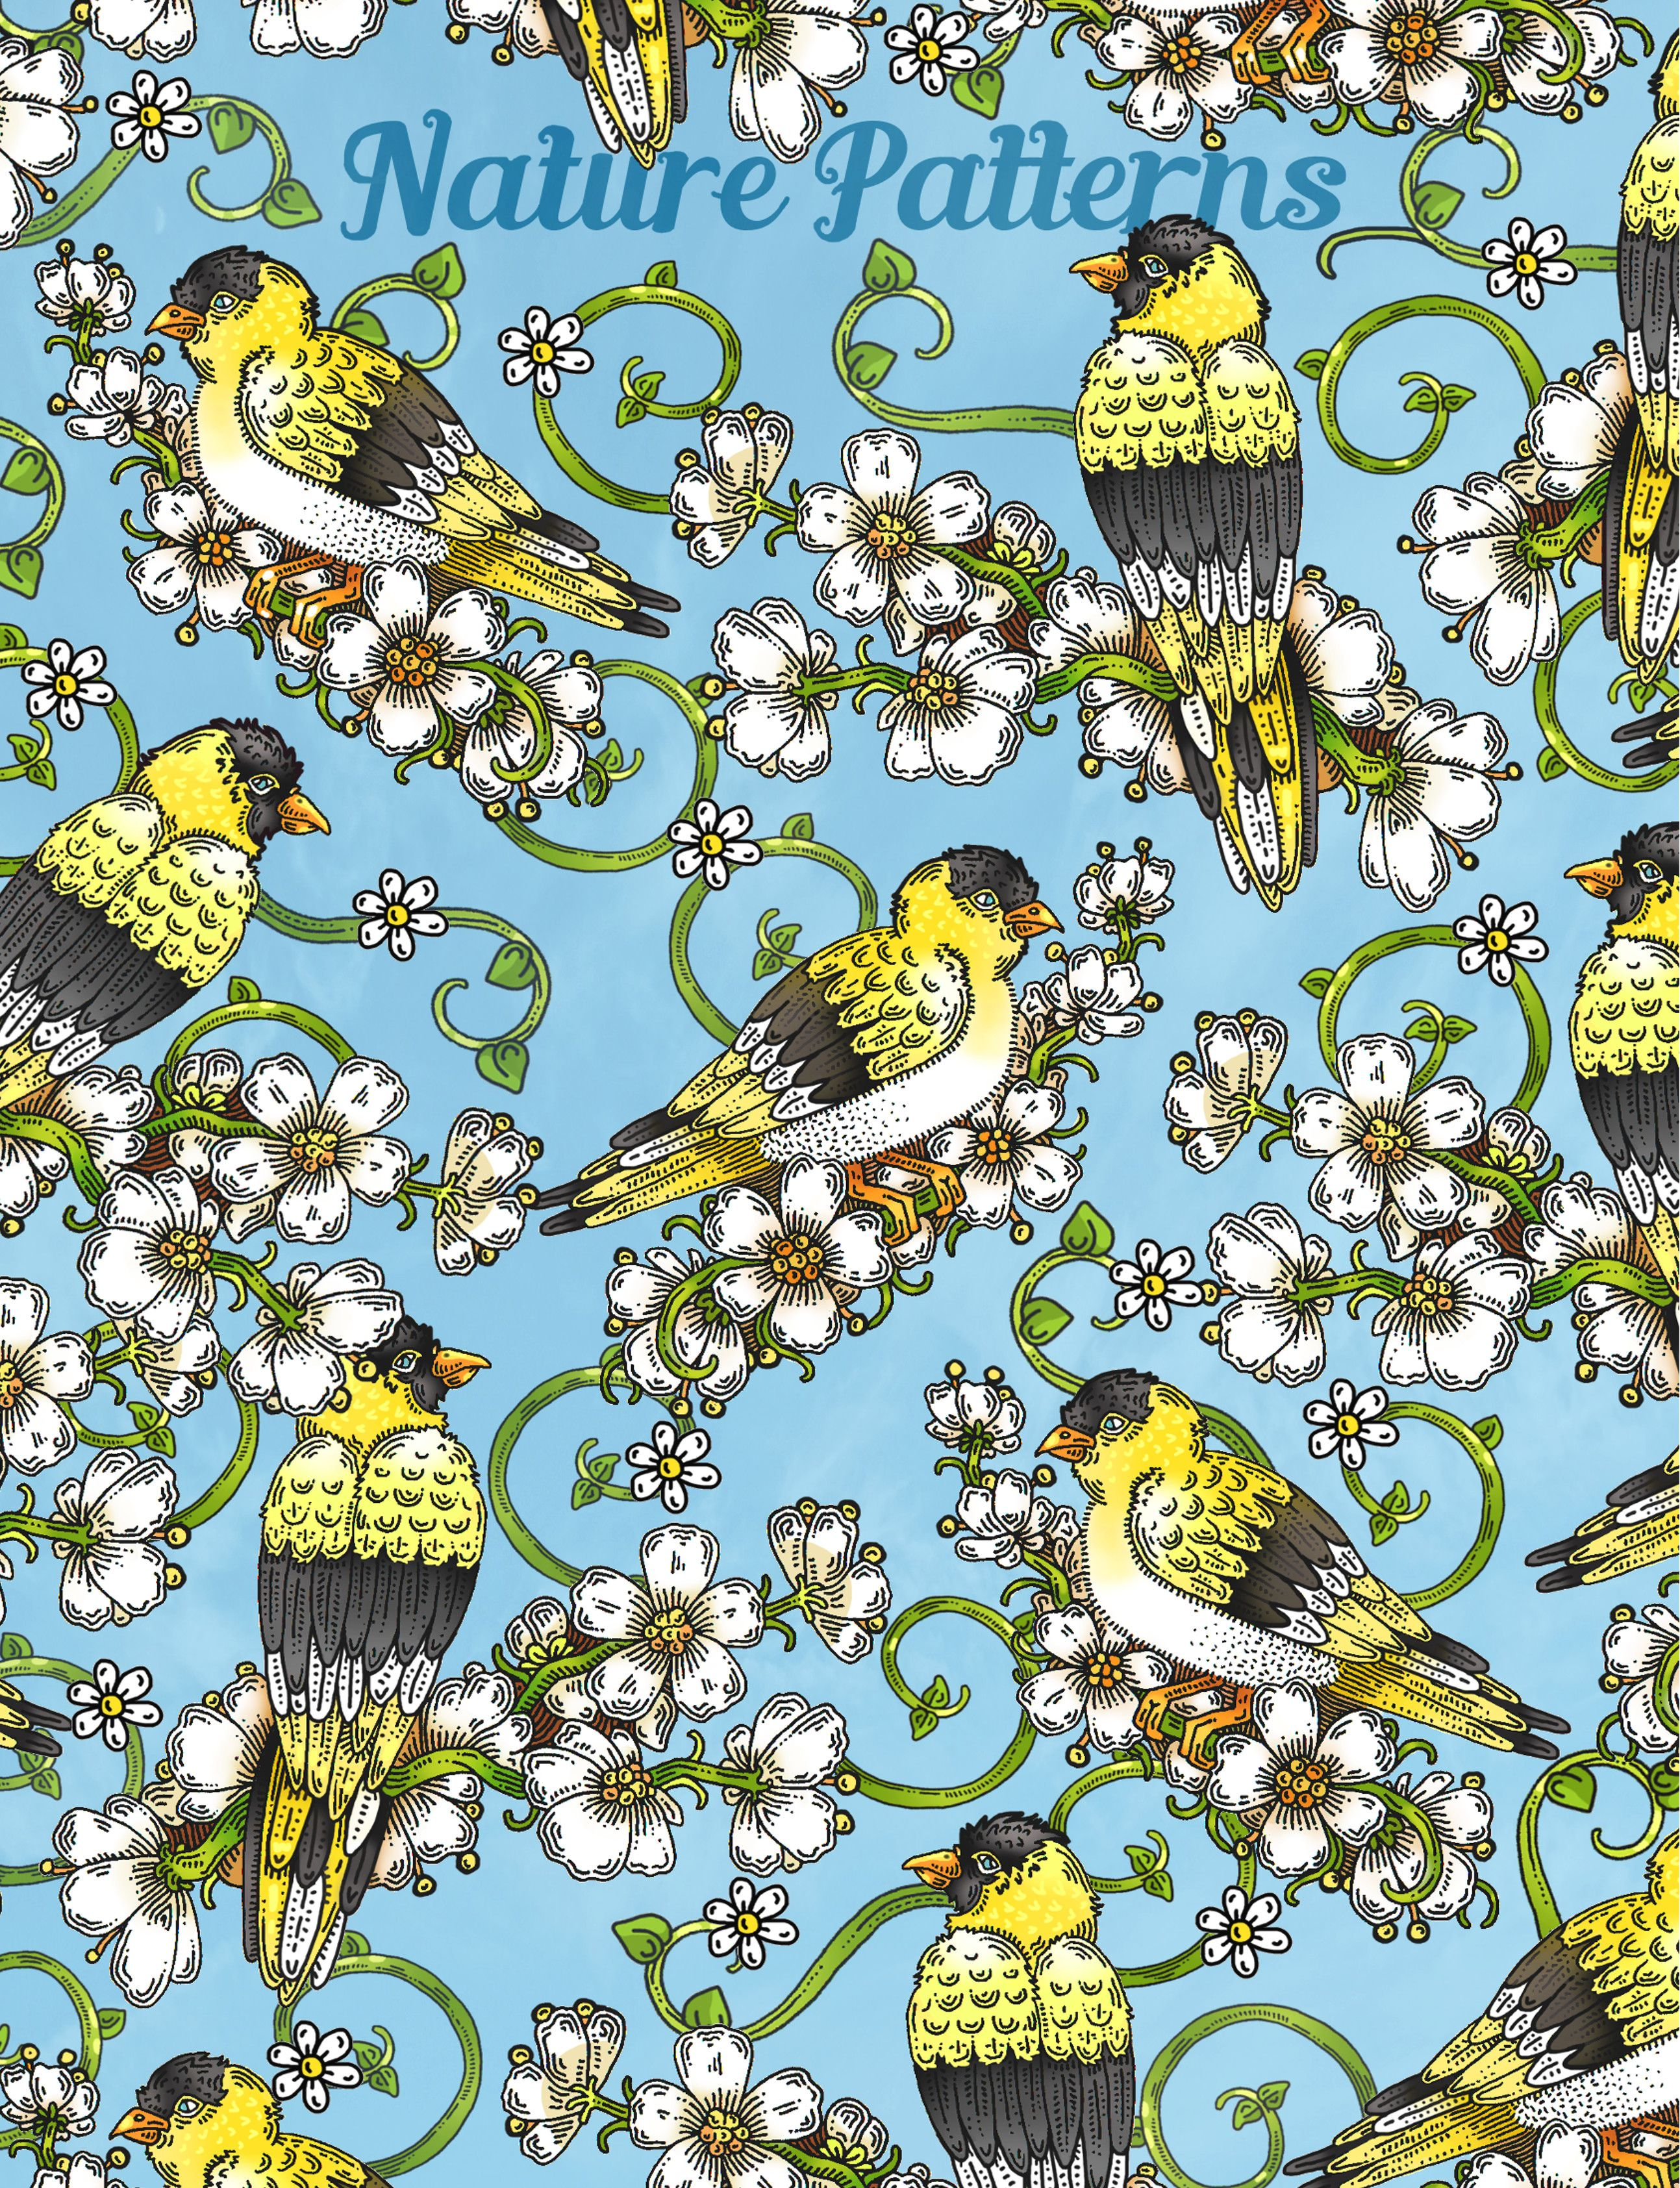 Nature Patterns A nature themed coloring book Artwork by